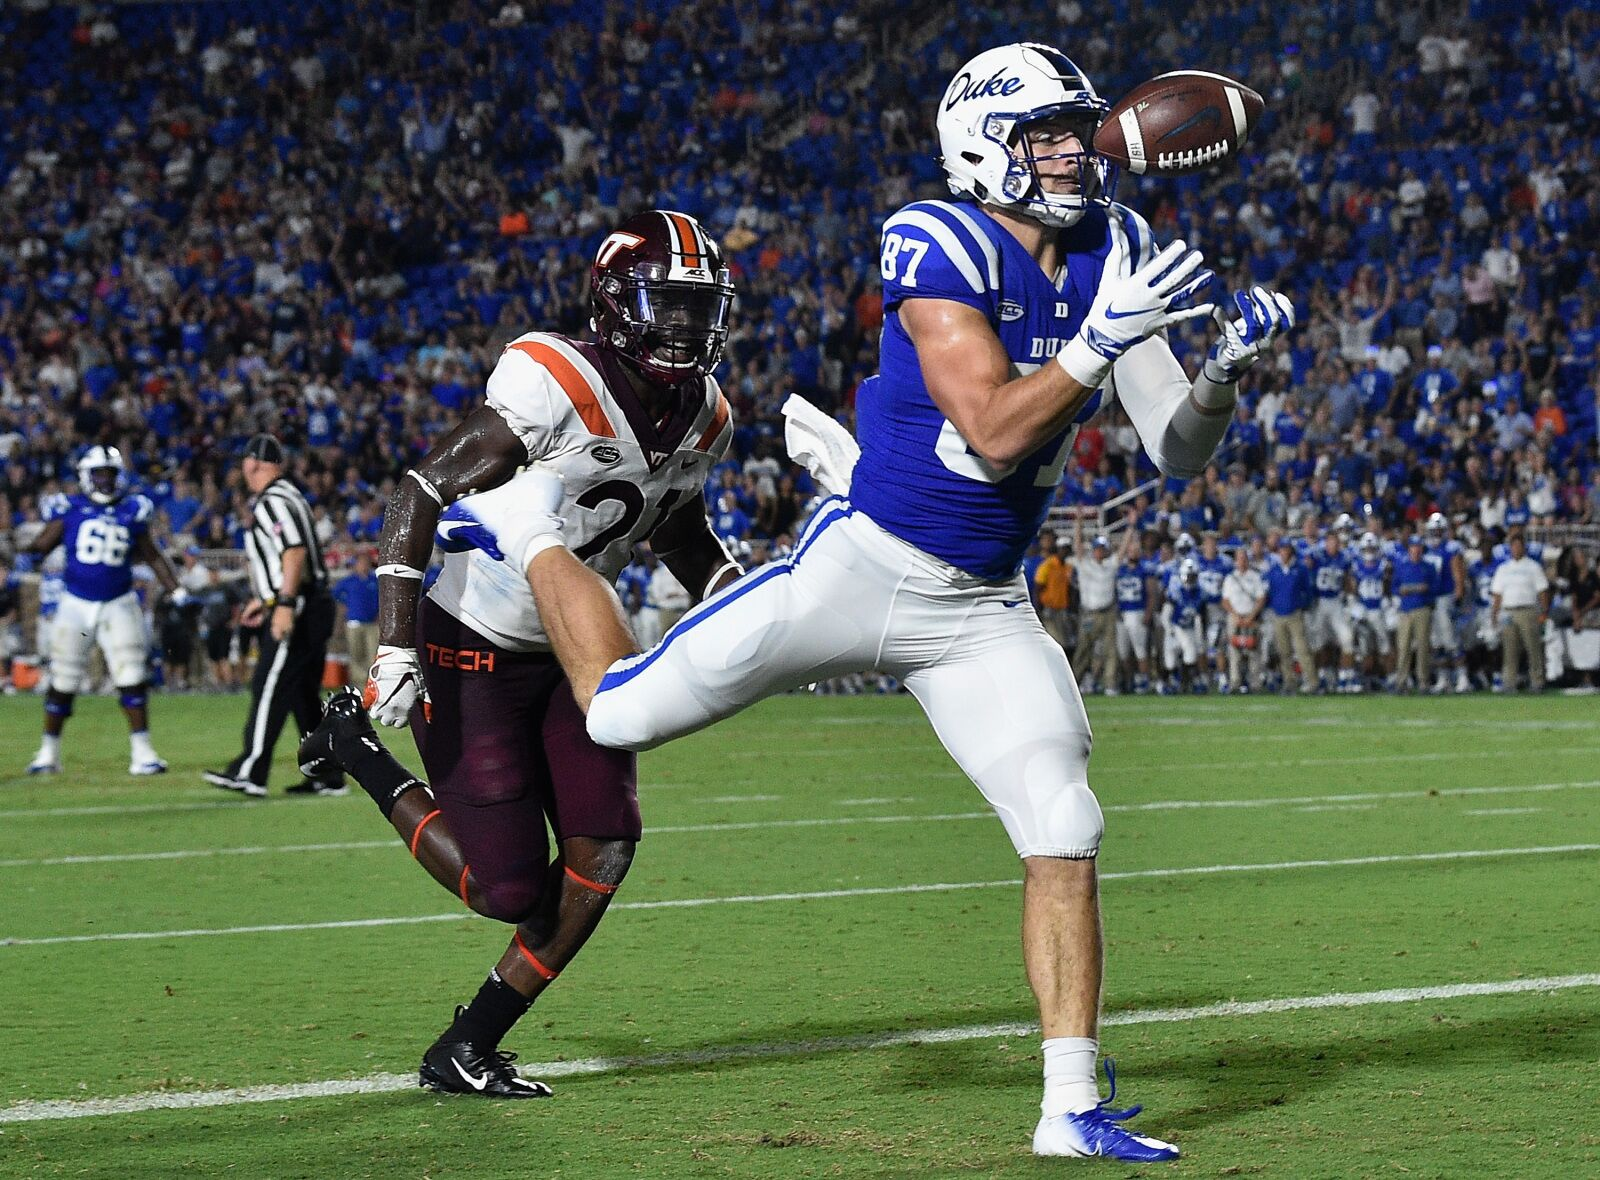 Blue Devils featured on many Pre-Season College Football Award Lists